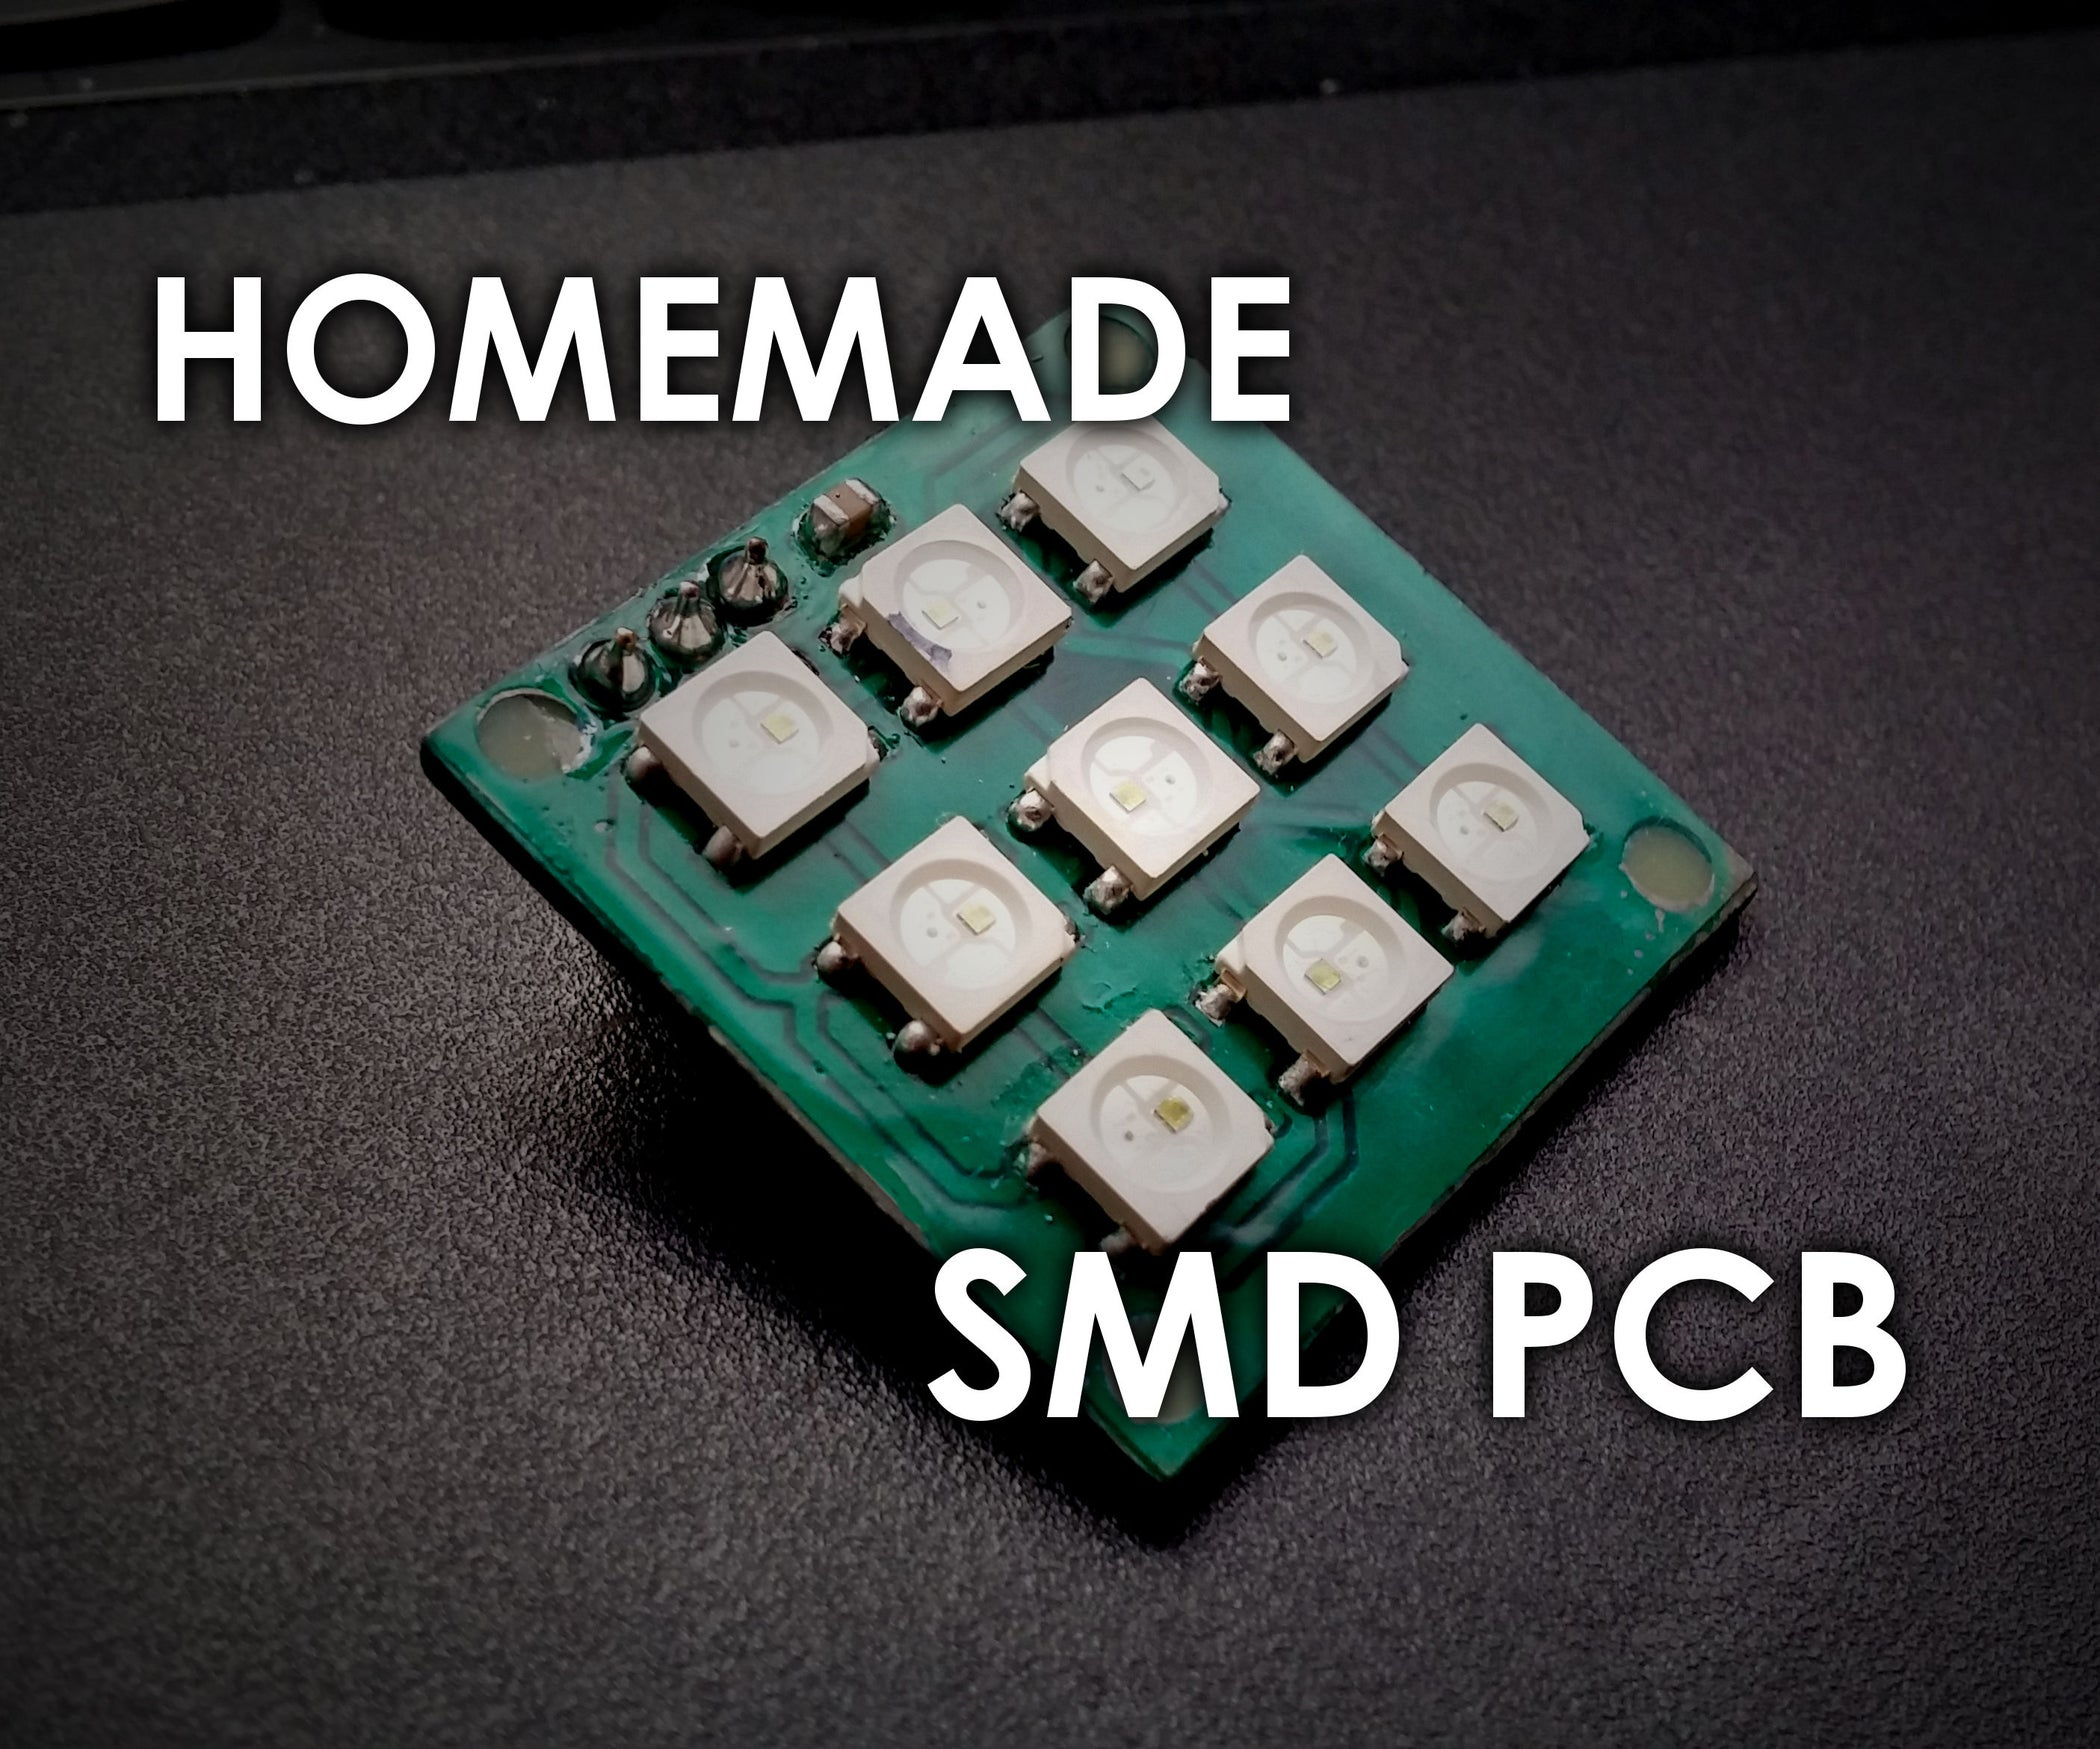 Making SMD PCBs at Home (Photoresist Method): 12 Steps (with Pictures)